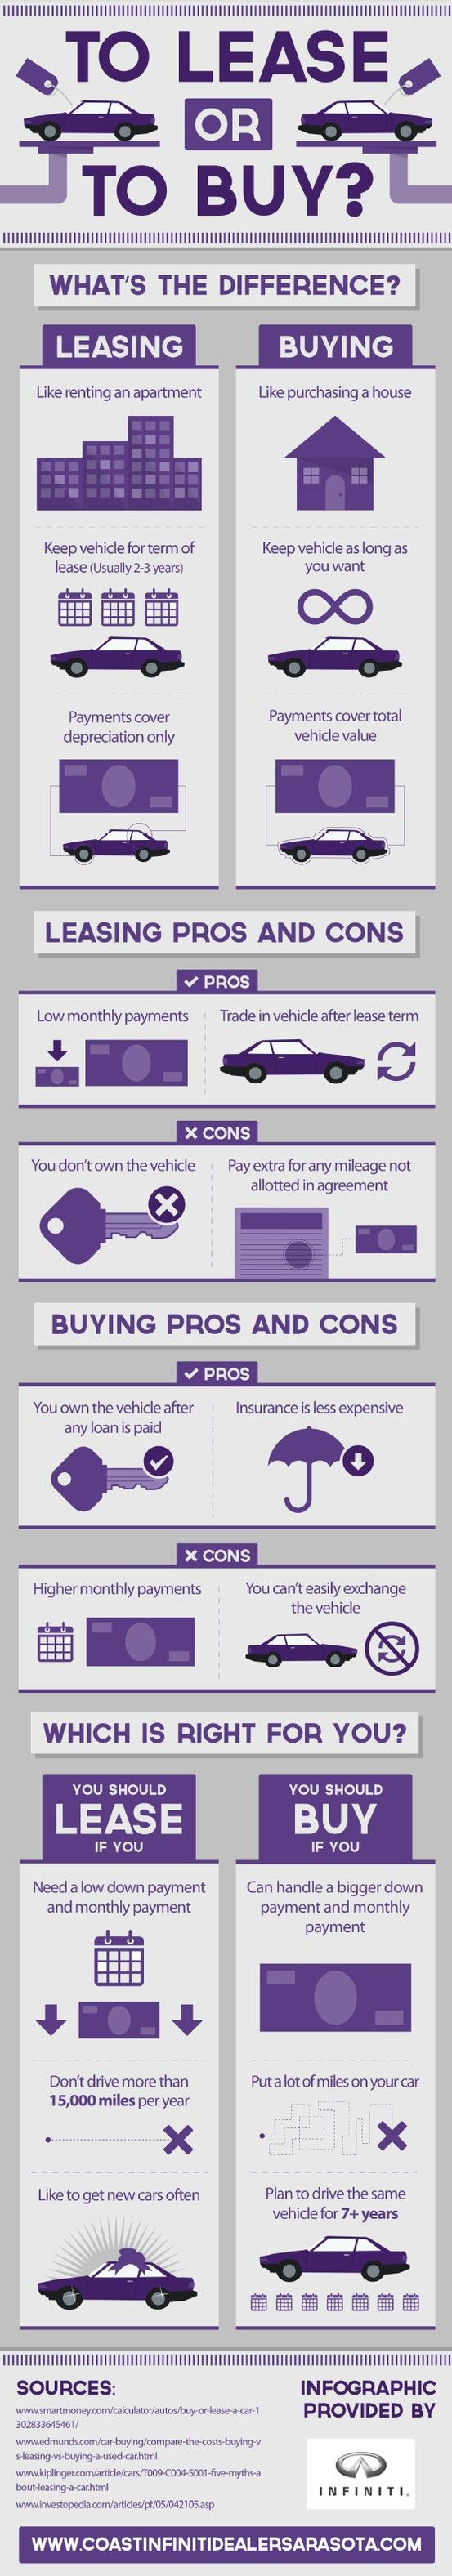 What are the differences between leasing and buying a car leasing a car results in